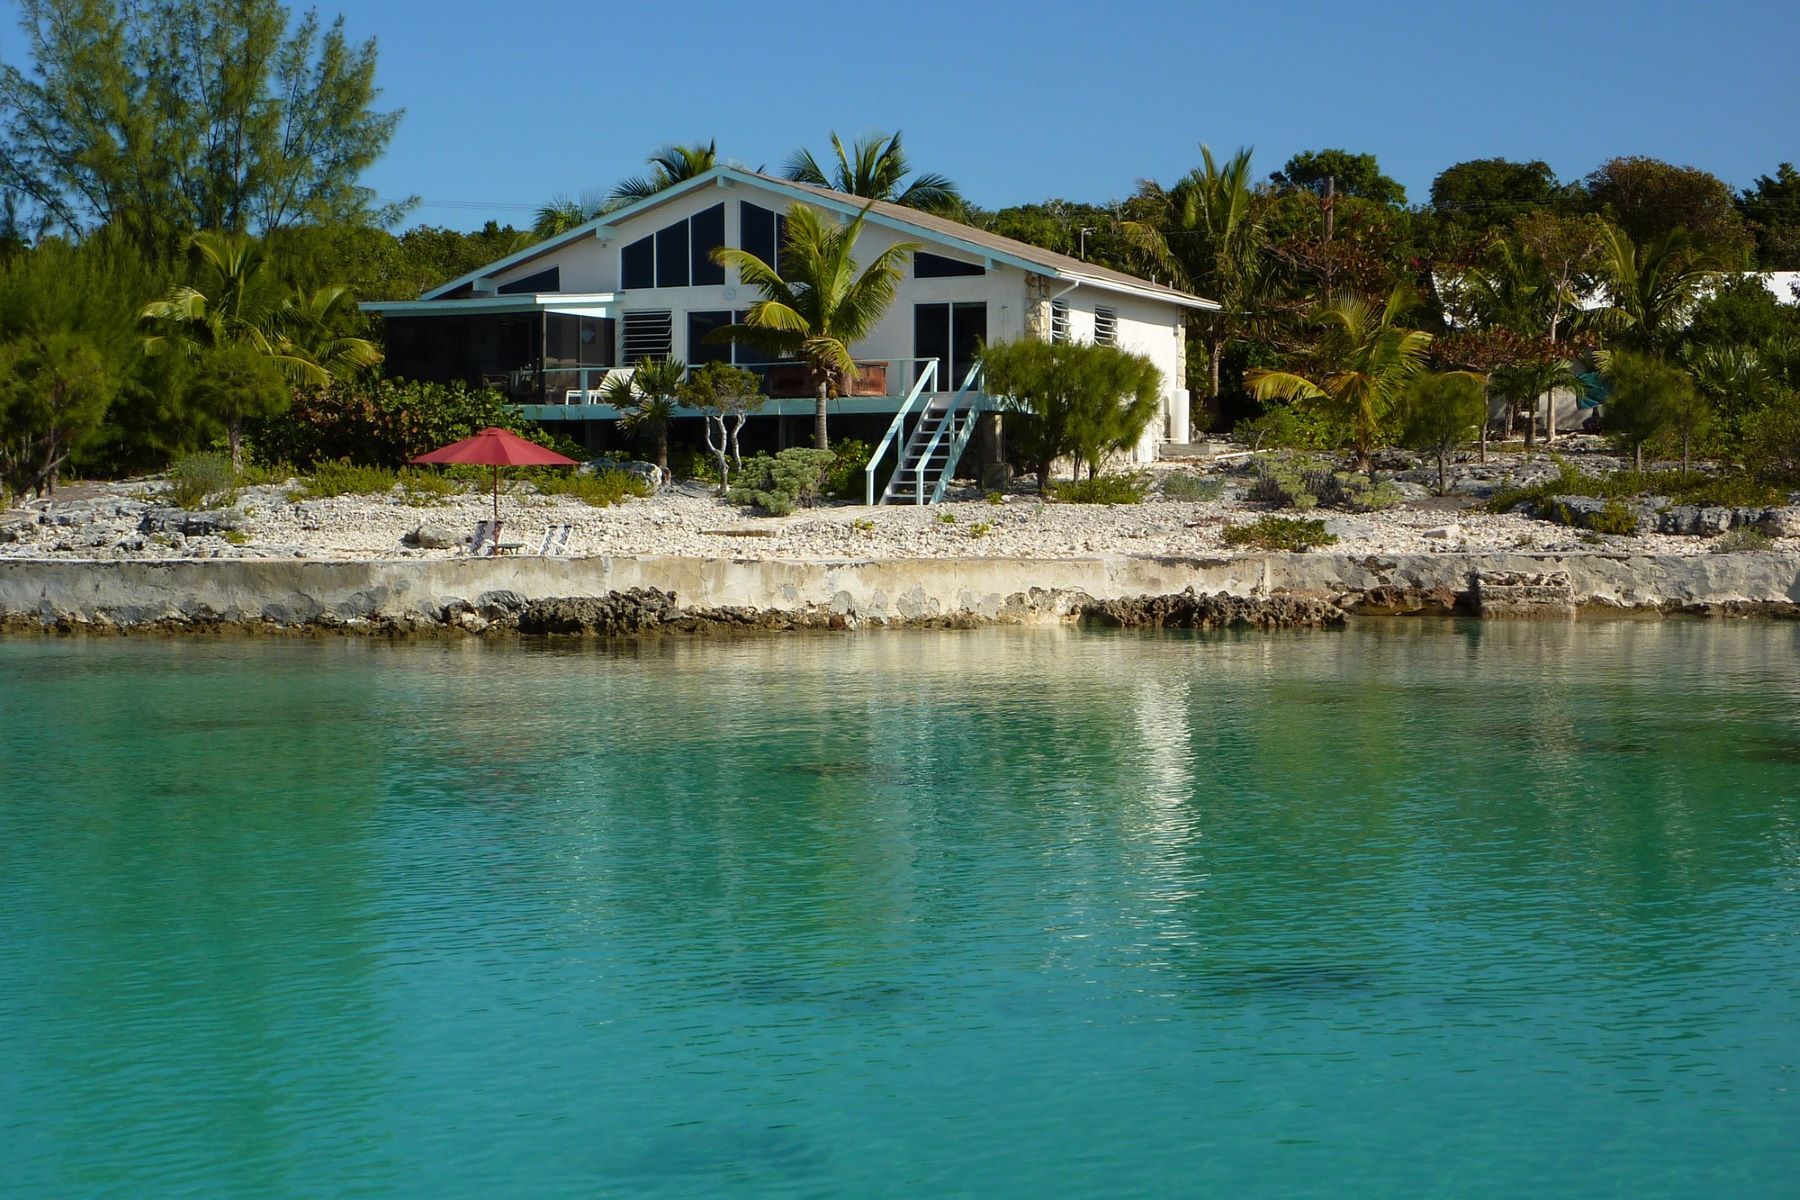 Single Family Home for Sale at Pirate's Venture Palmetto Shores, Palmetto Point, Eleuthera Bahamas